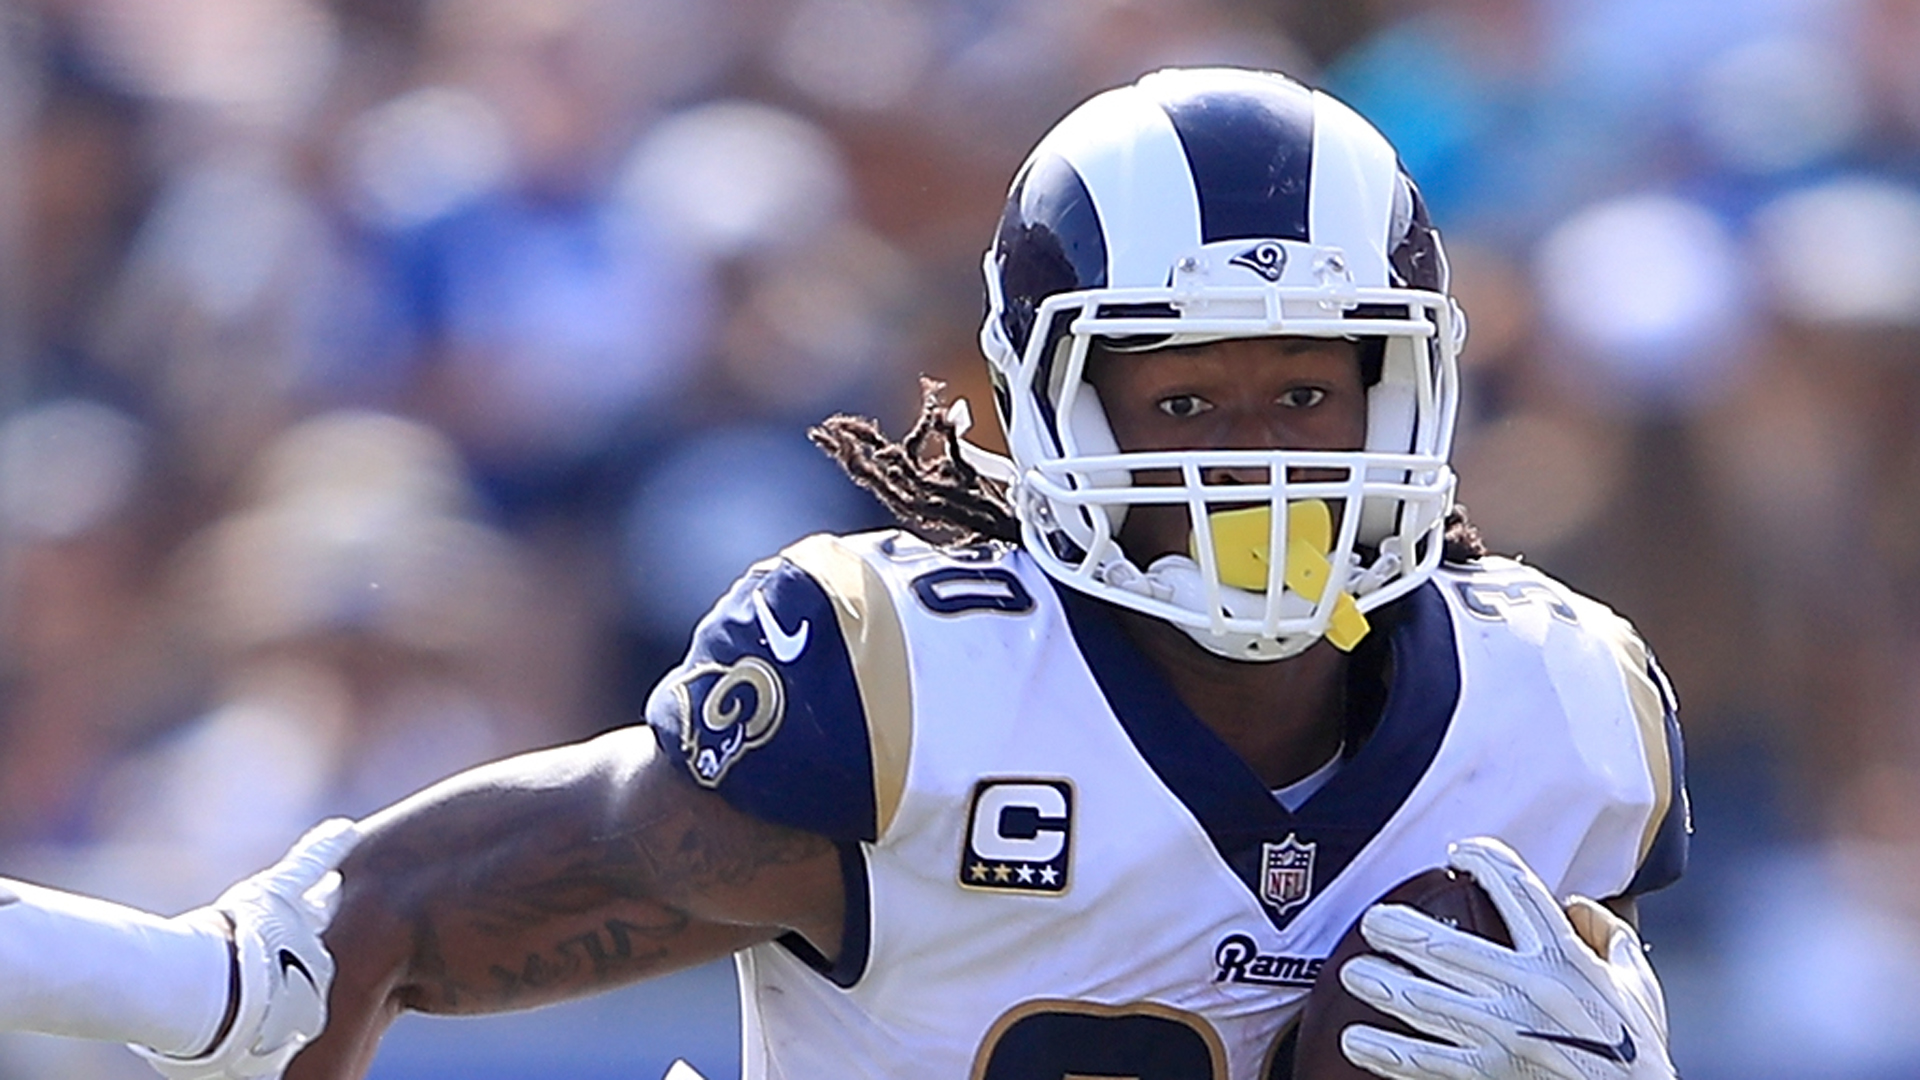 Watch Rams RB Todd Gurley hurdles his way to a touchdown